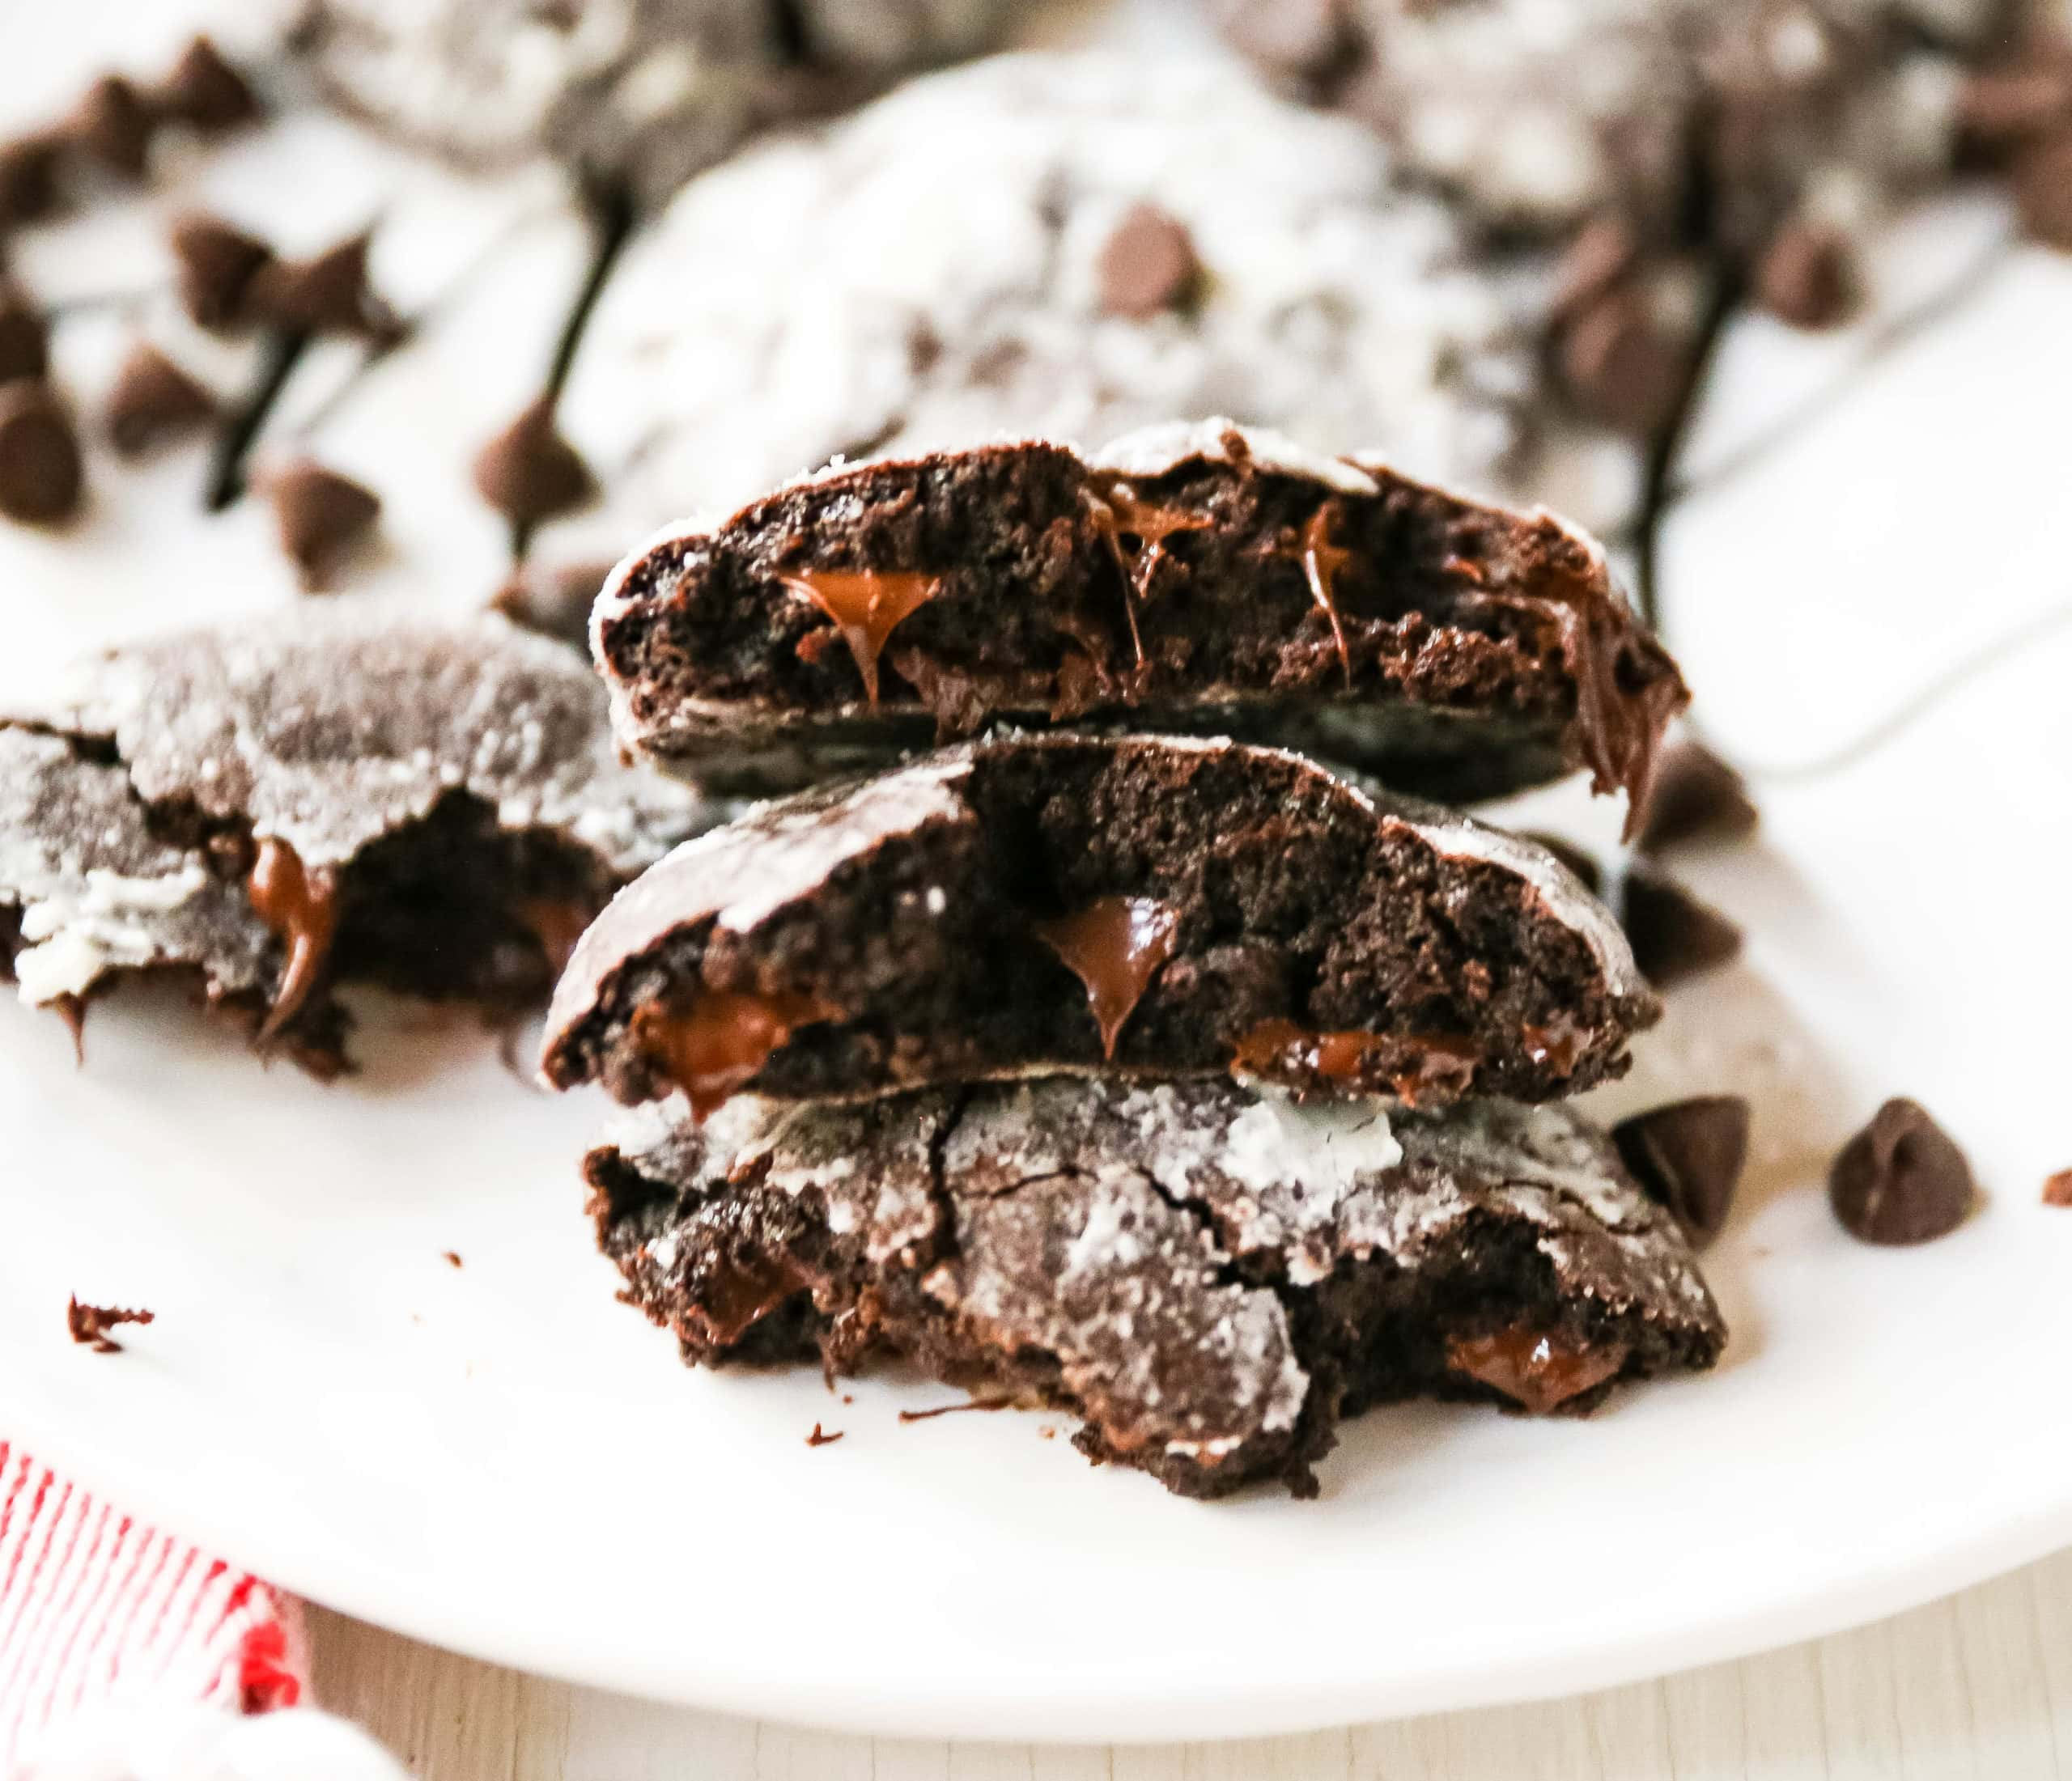 Chocolate Crinkle Cookies Soft, chewy, rich, fudgy chocolate cookies rolled into two types of sugar and baked until the edges crinkle. www.modernhoney.com #chocolatecookies #chocolatecrinklecookies #crinklecookies #christmascookies